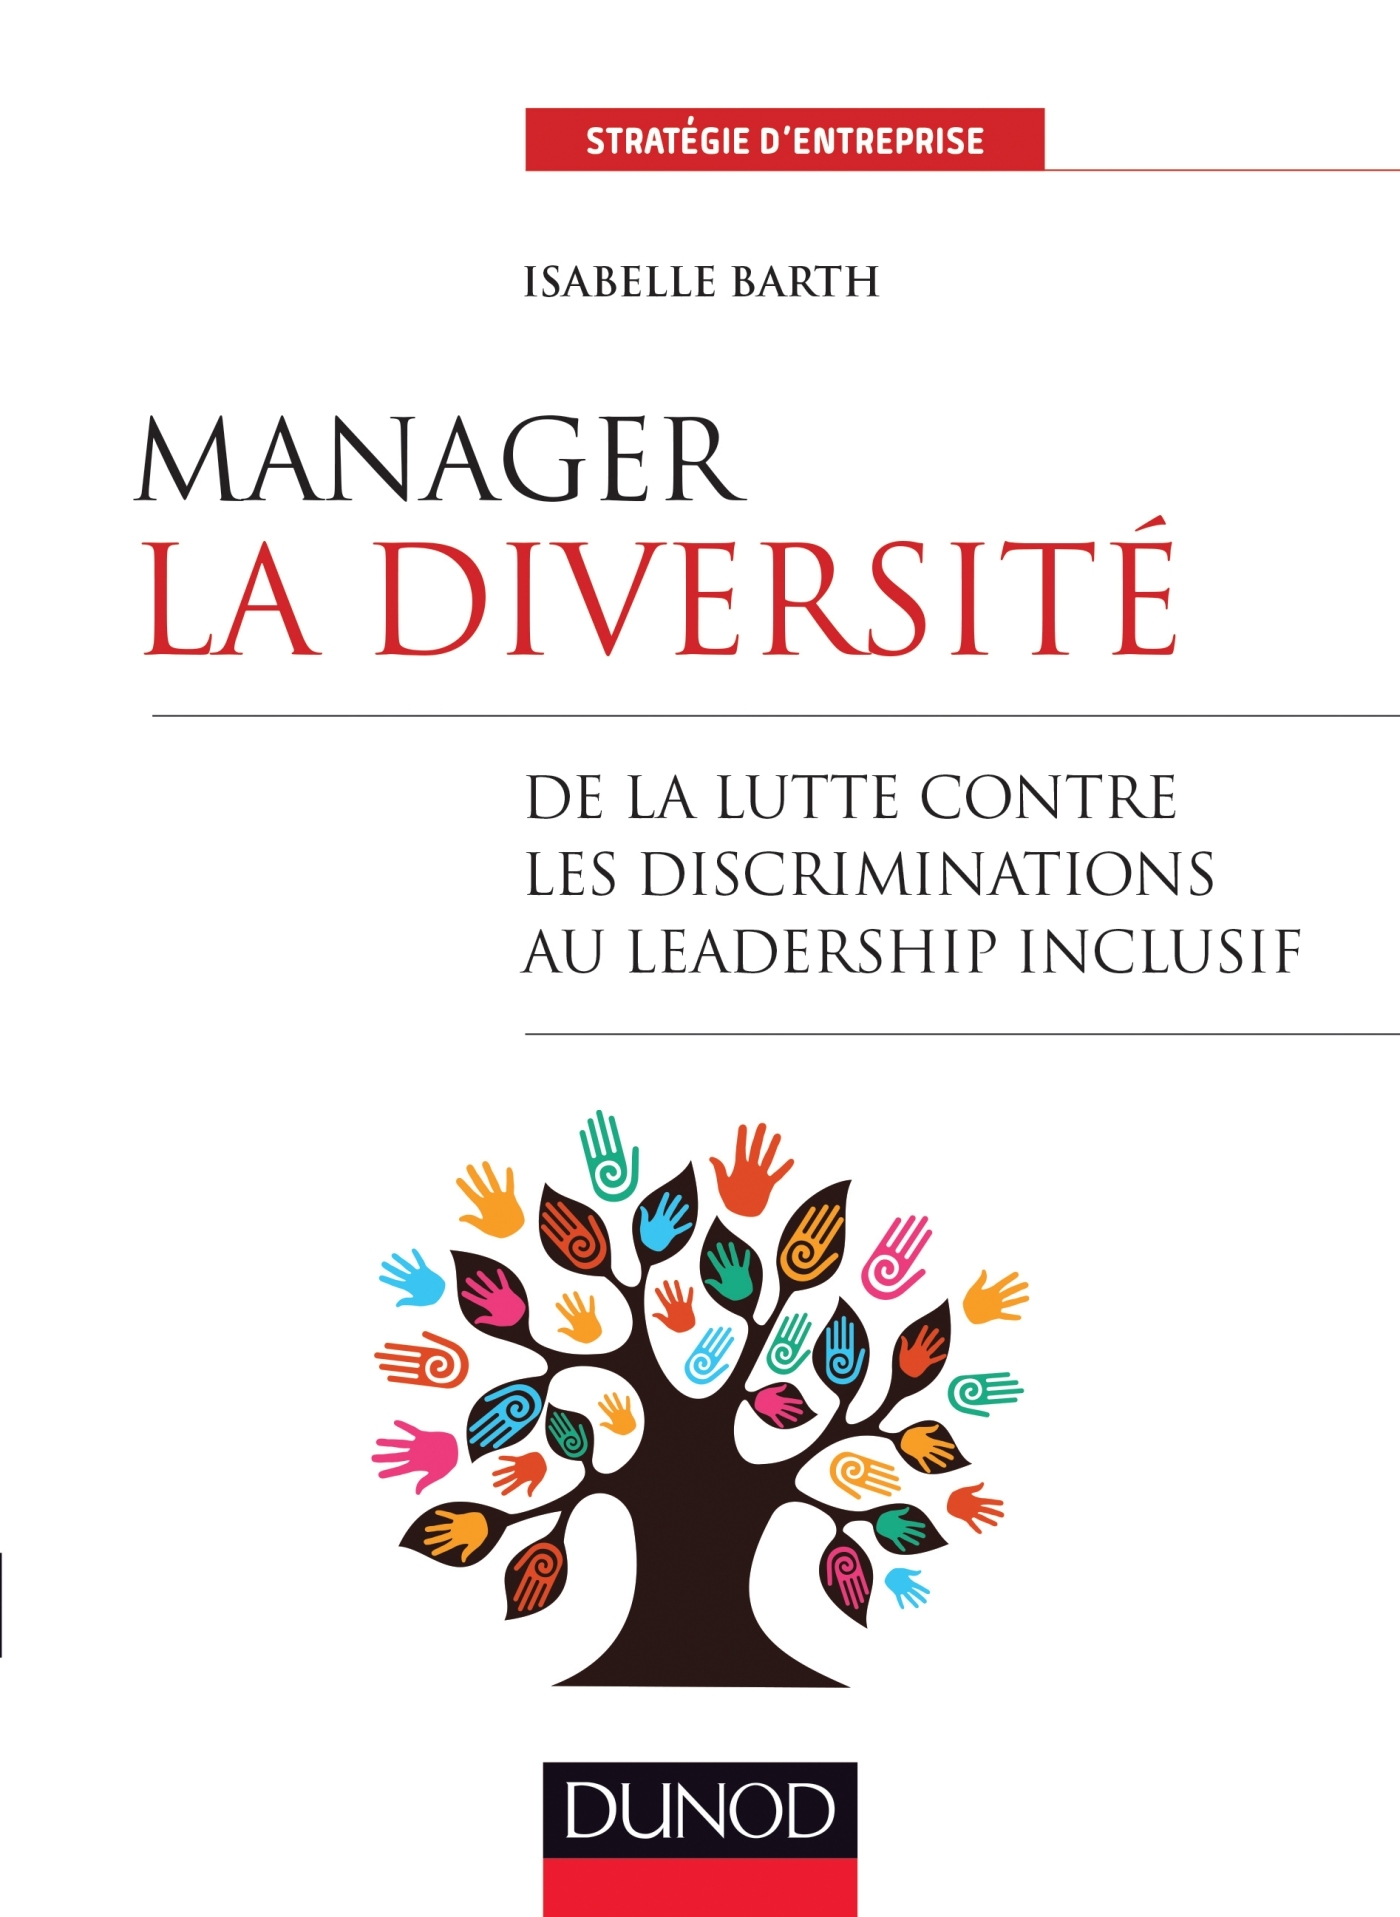 MANAGER LA DIVERSITE - DE LA LUTTE CONTRE LES DISCRIMINATIONS AU LEADERSHIP INCLUSIF